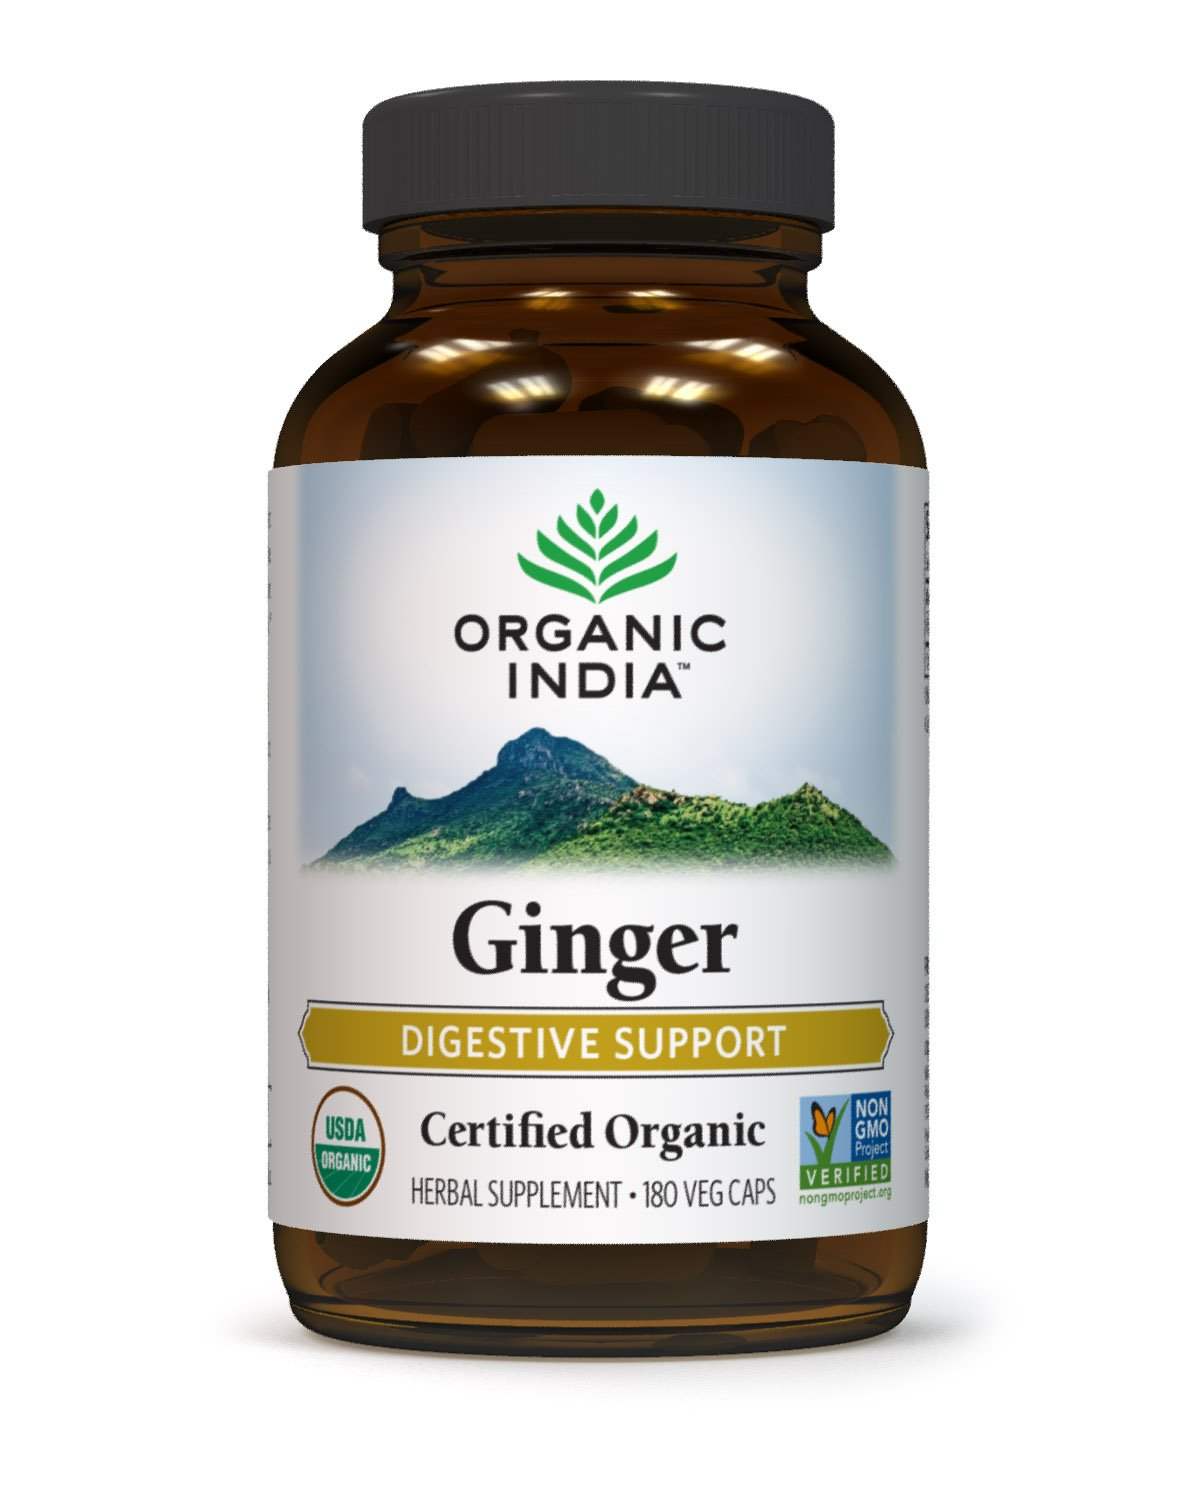 Organic India Natural Ginger Capsules (180) - Organic Ginger Nutritional Supplement for Digestive Support, GI Tract Support, Cardiovascular Functioning, Anti-Nausea Remedy, and Overall Immunity Boost